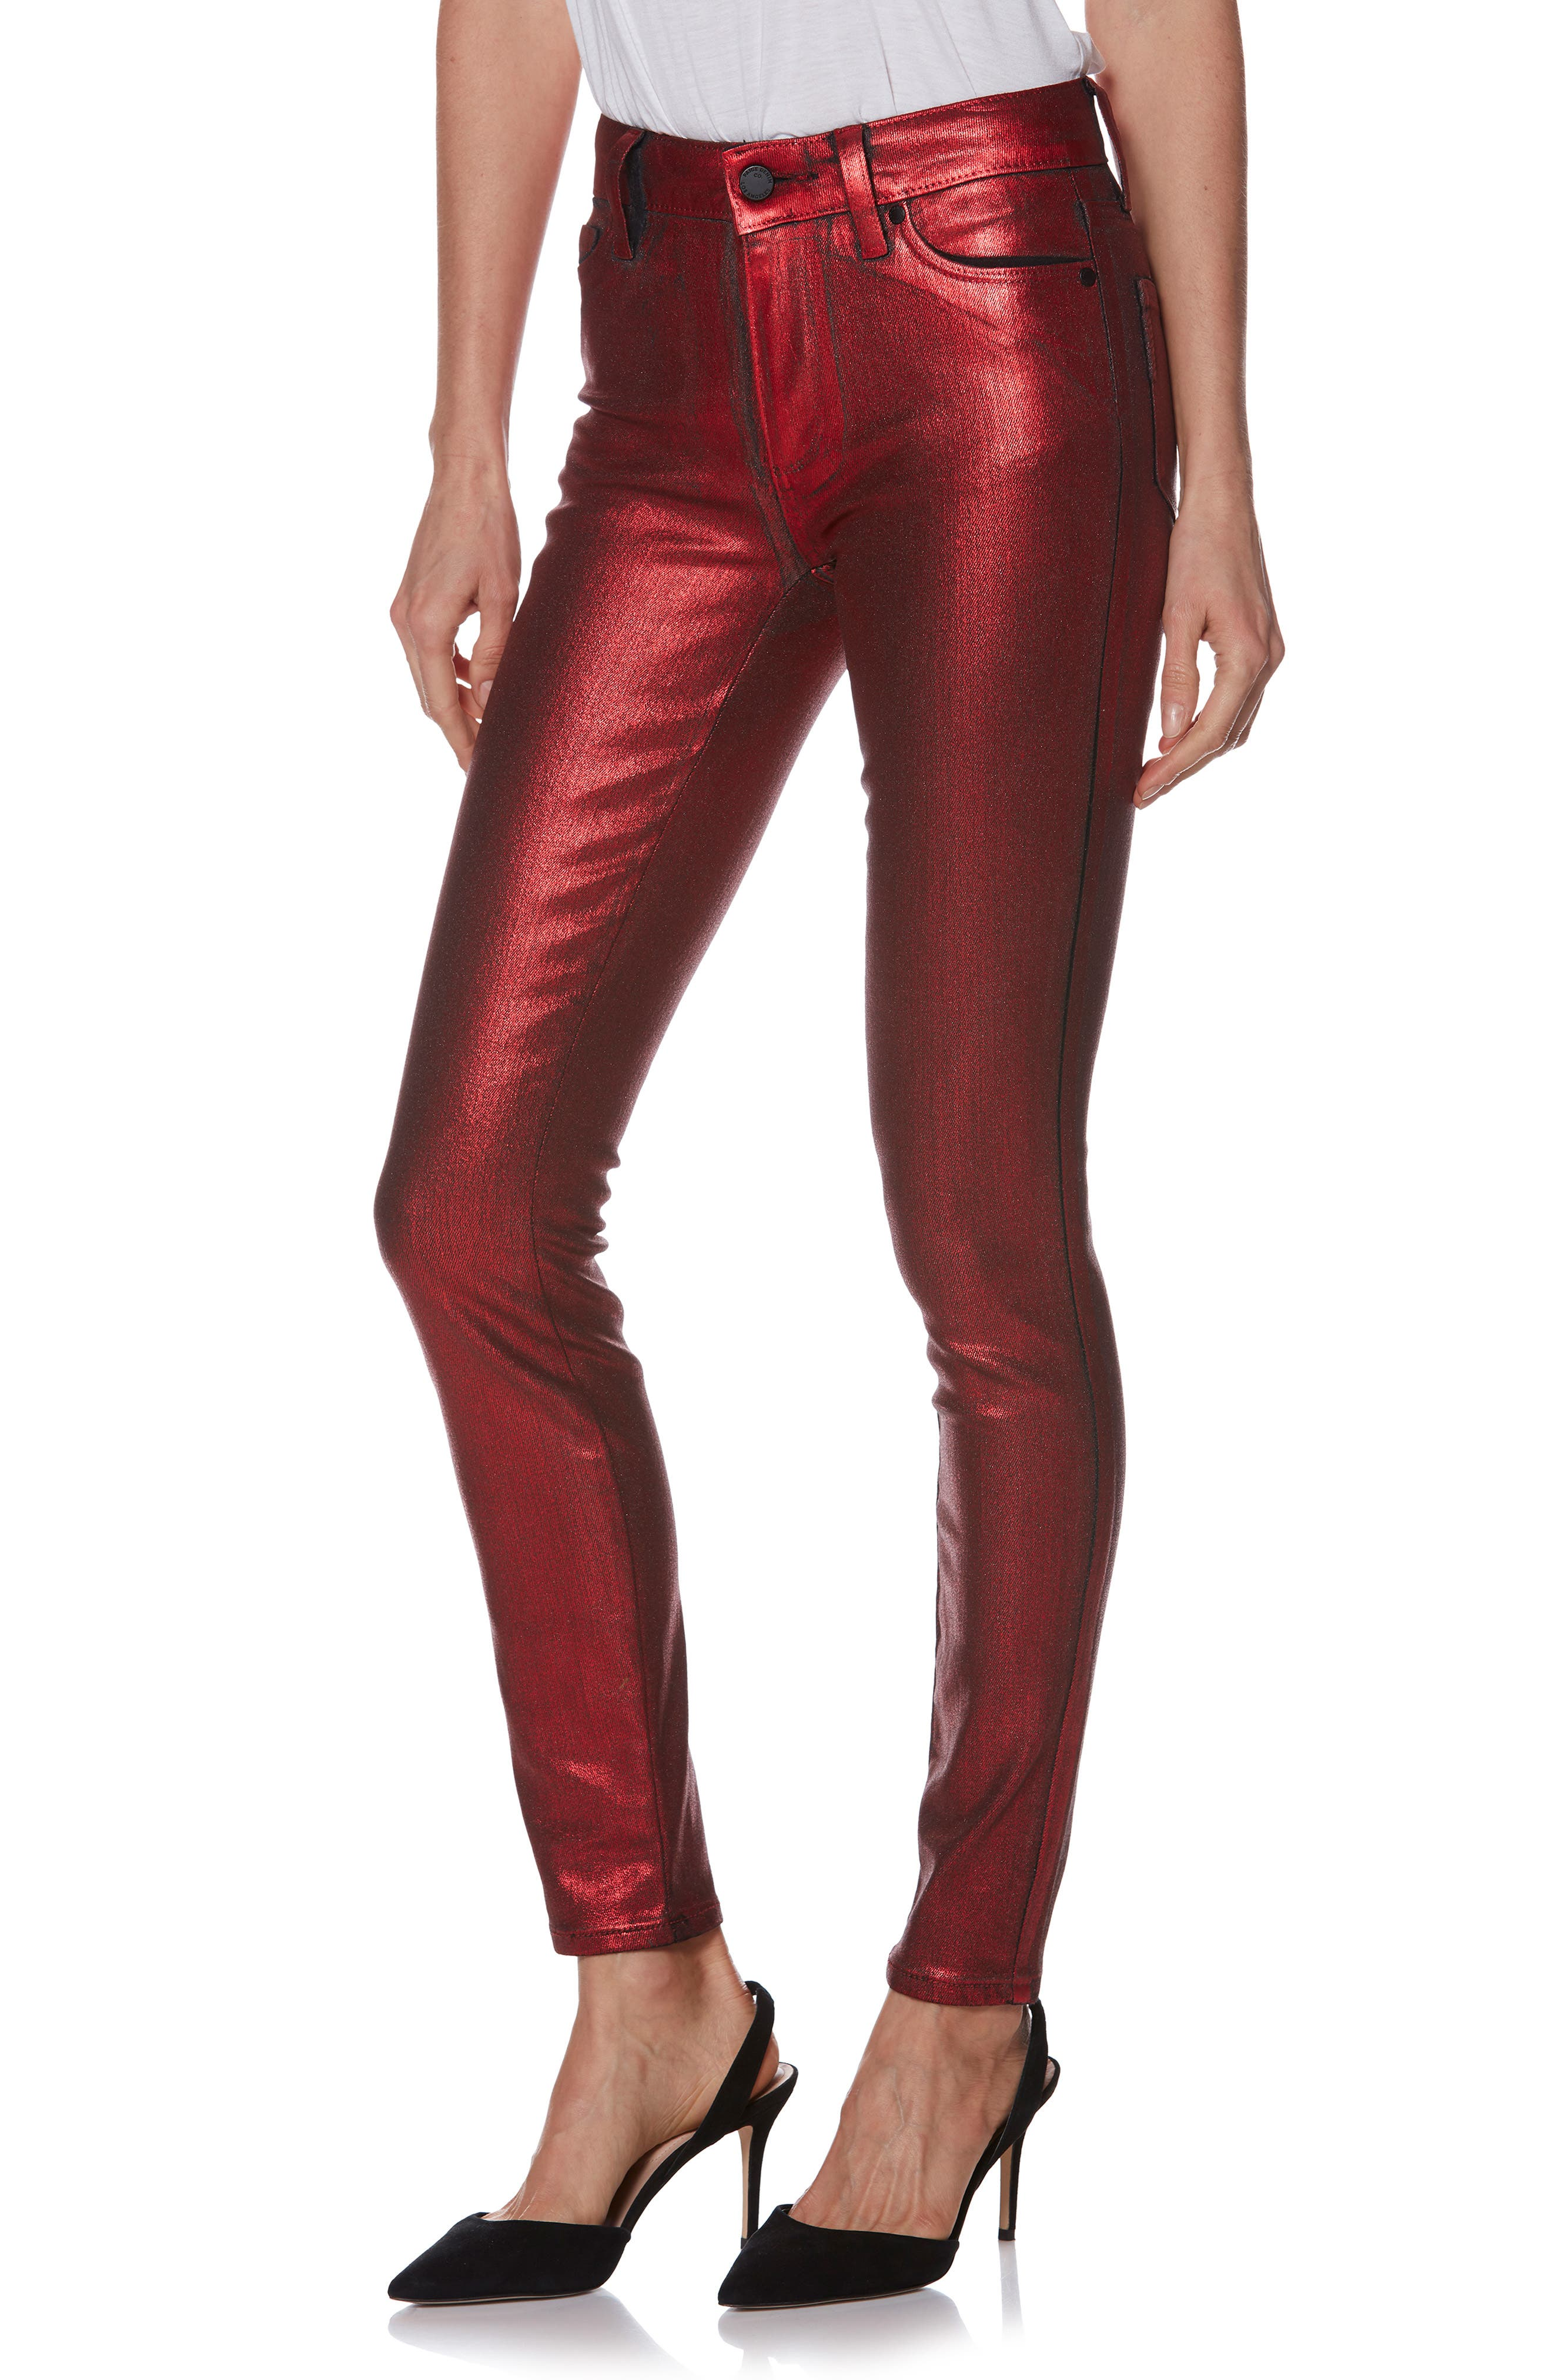 Hoxton High Waist Ultra Skinny Jeans,                         Main,                         color, RED GALAXY COATING